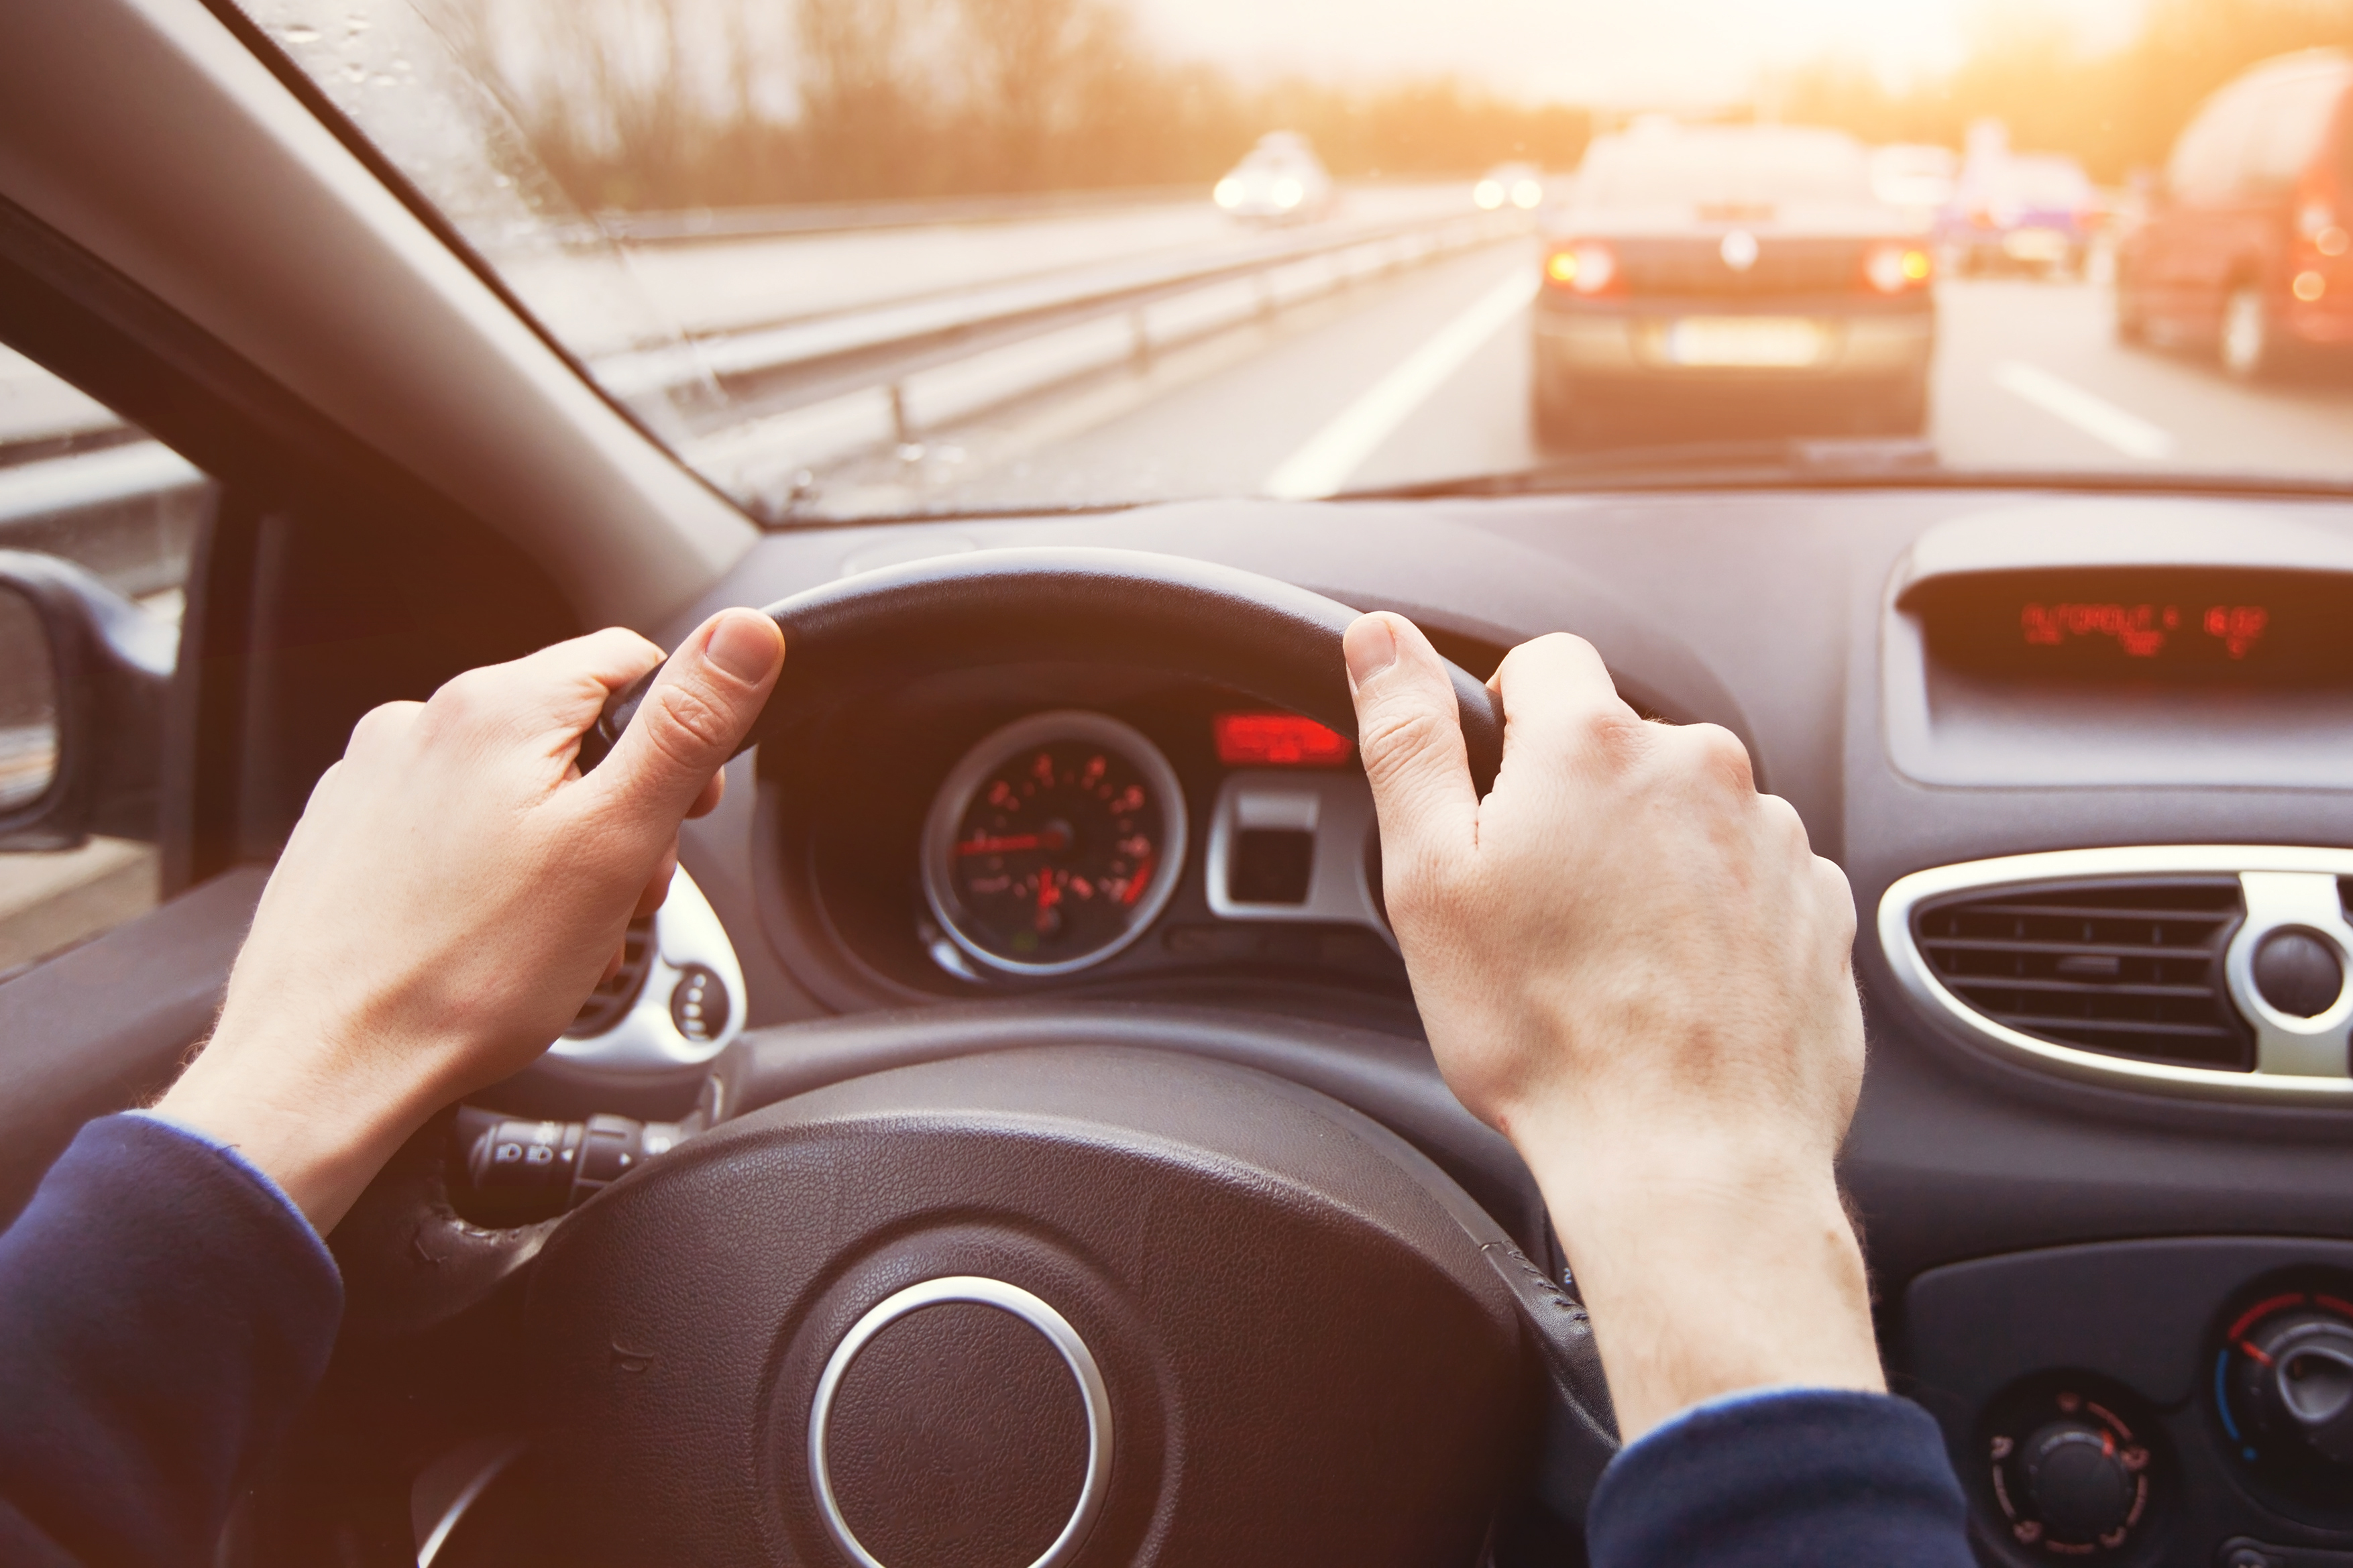 Commuting caregivers: Addressing driver safety with your team